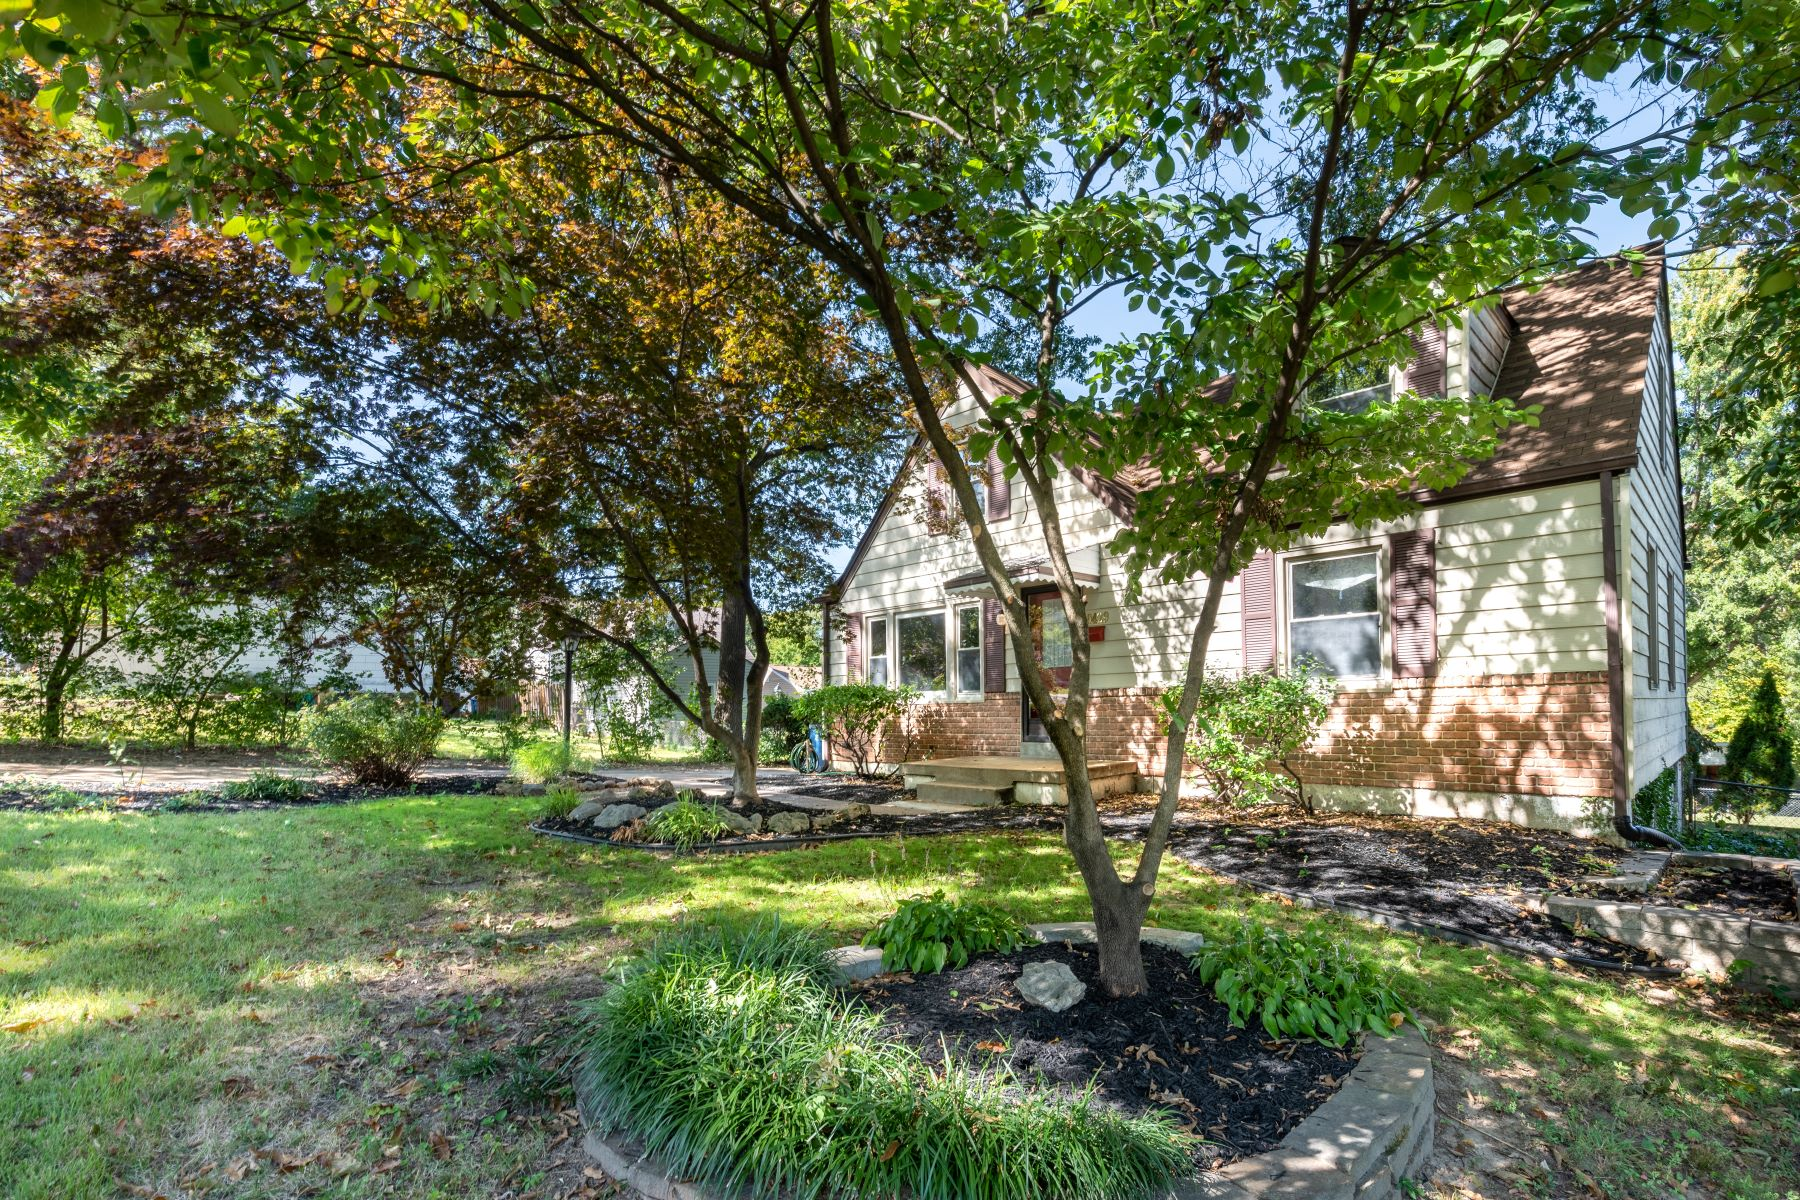 Single Family Homes for Sale at An Overland Jewel 9429 Trescott Avenue Overland, Missouri 63114 United States